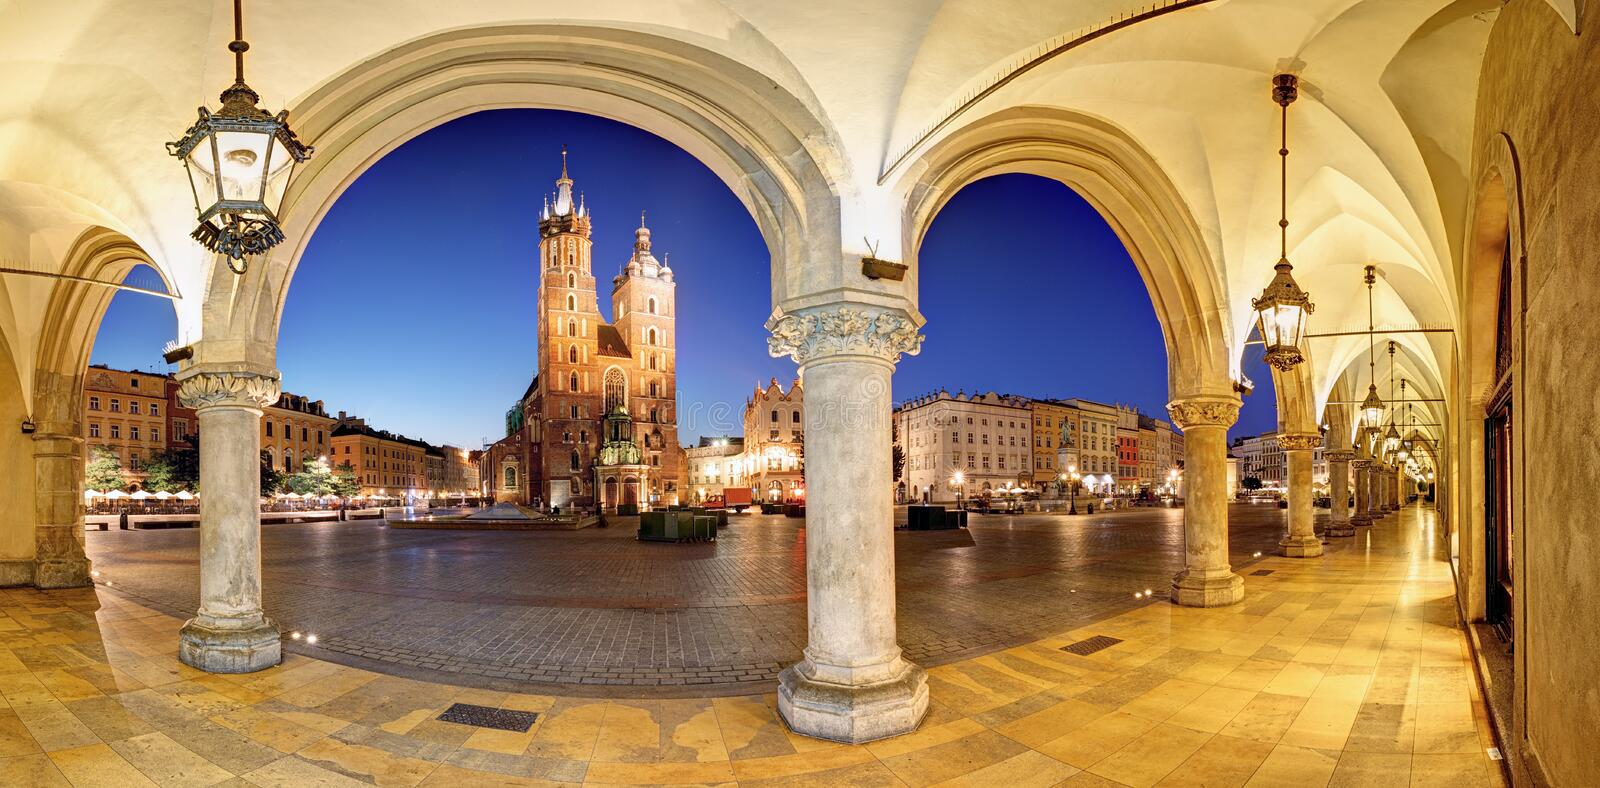 Cracow, Krakow Market Square at night, cathedral, Poland royalty free stock image